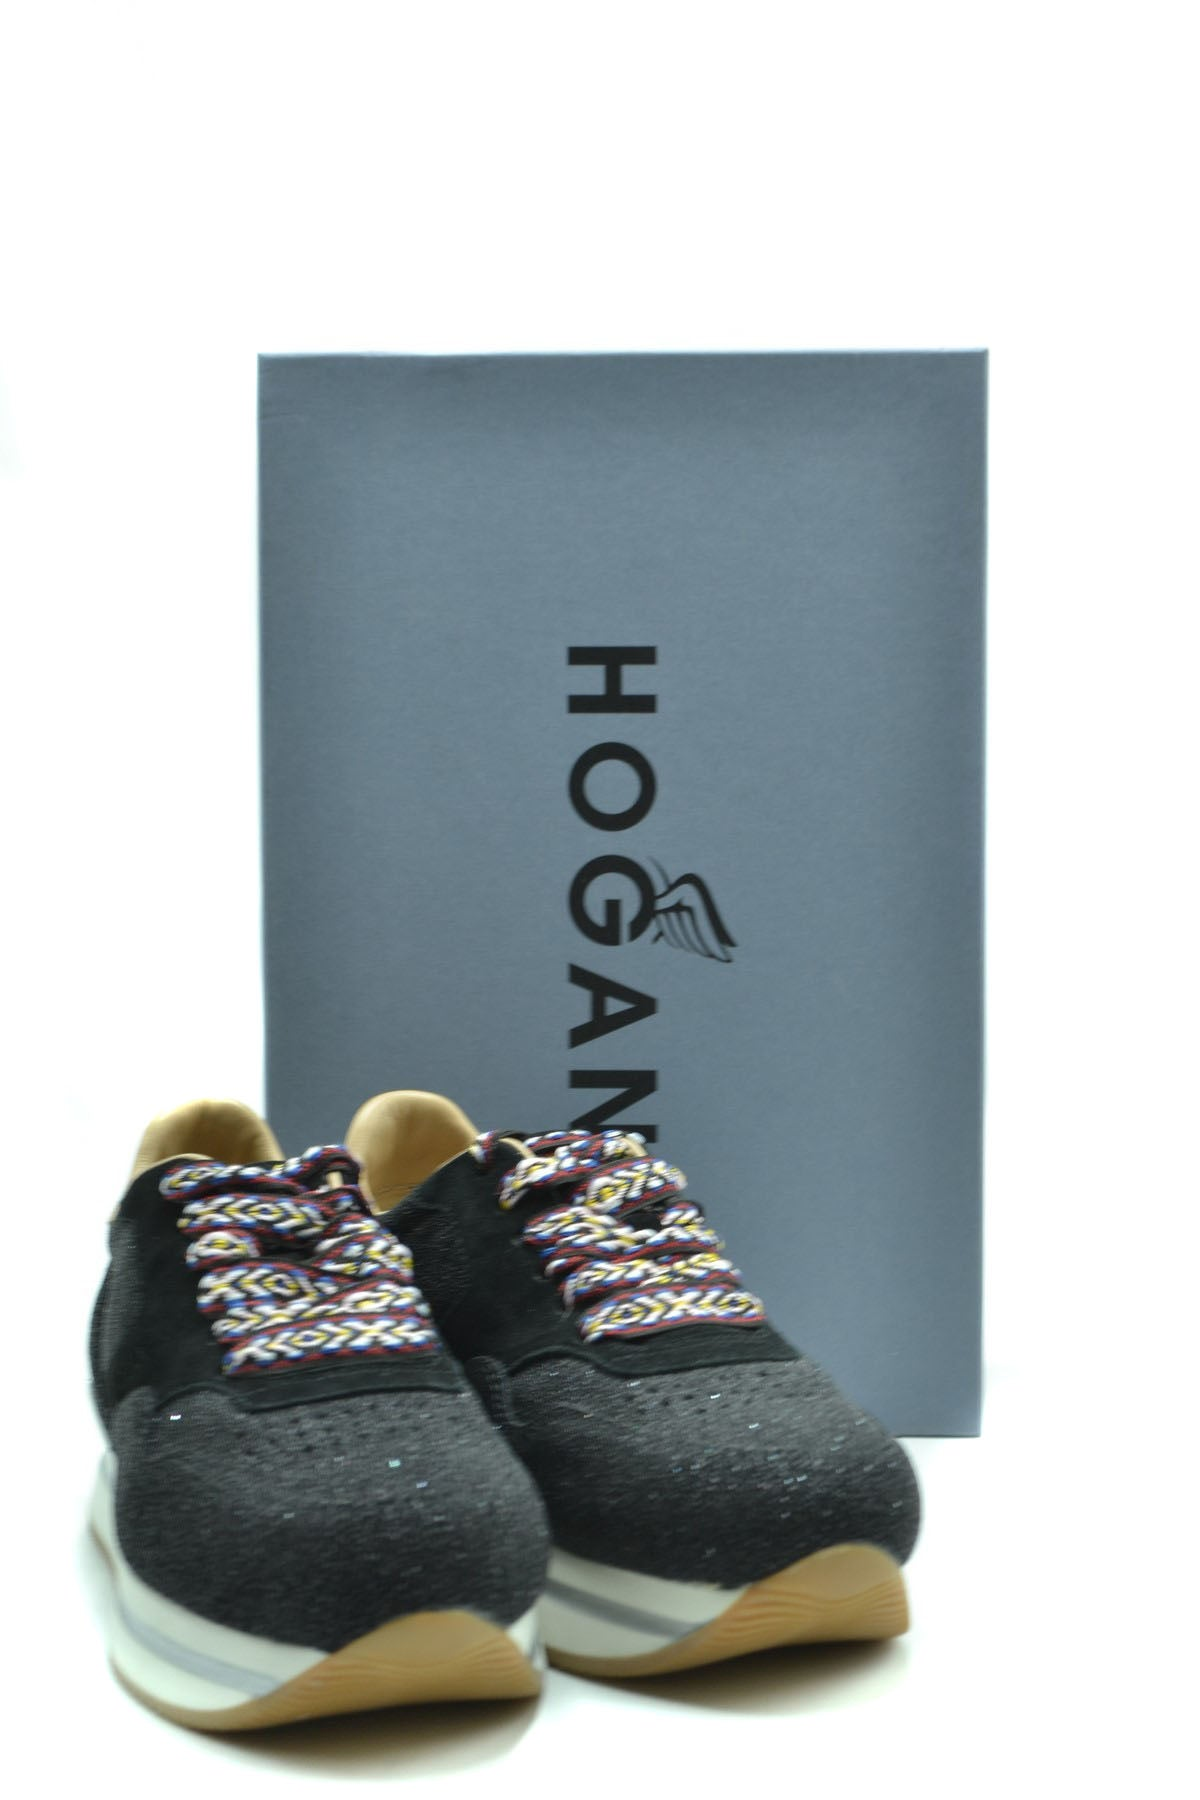 Shoes Hogan-Sports & Entertainment - Sneakers-Product Details Terms: New With LabelMain Color: BlackType Of Accessory: ShoesSeason: Fall / WinterMade In: ItalyGender: WomanSize: EuComposition: Leather 100%Year: 2020Manufacturer Part Number: Hxw2220M468Jdj079X-Keyomi-Sook